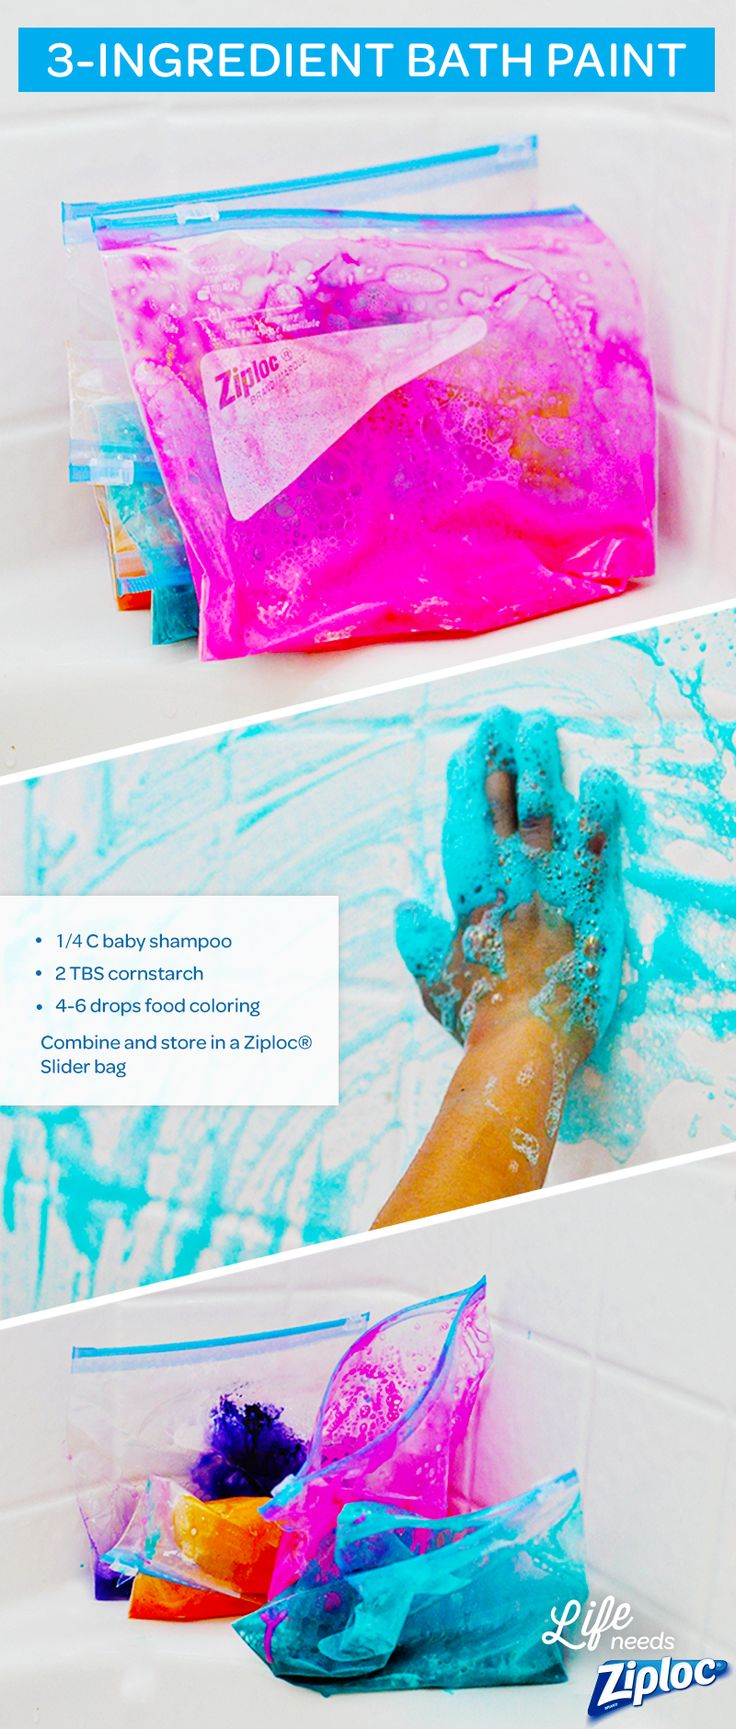 Baby safe paint for crafts - After Dinner Wind Down Bath Paintbaby